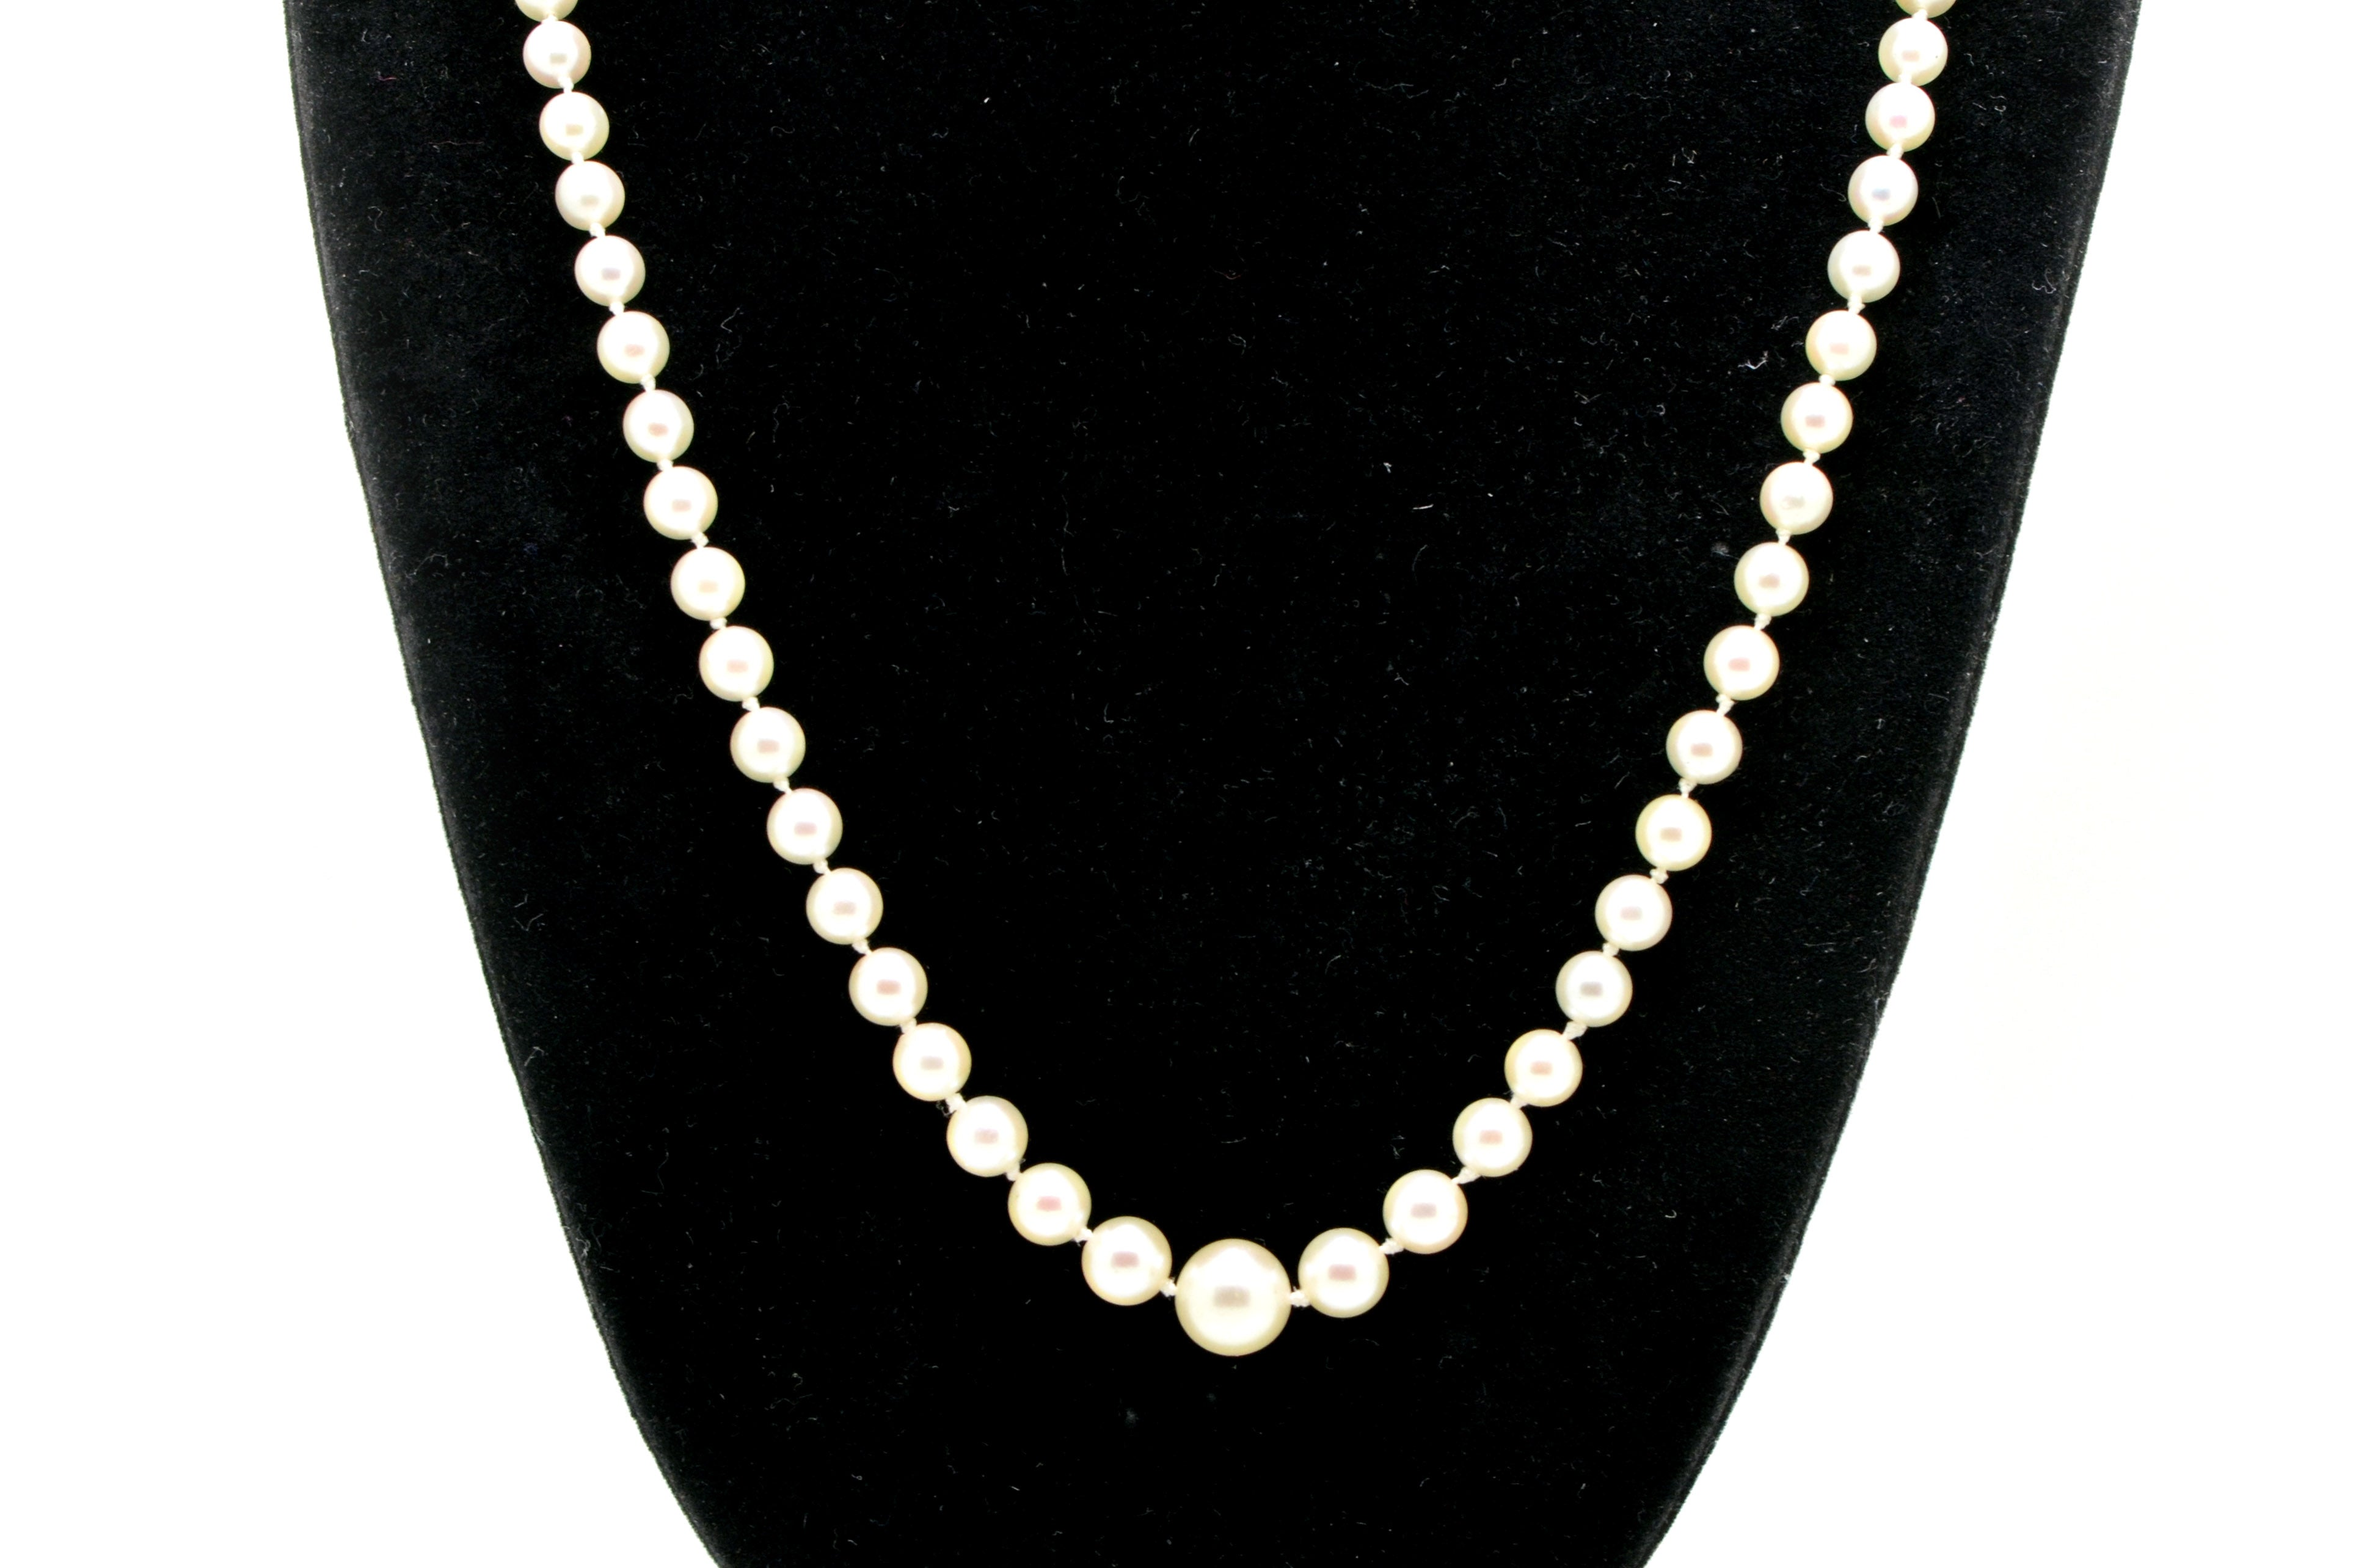 14k White Gold Strand of White Akoya Pearl Strand Necklace with Clasp - 17 in.